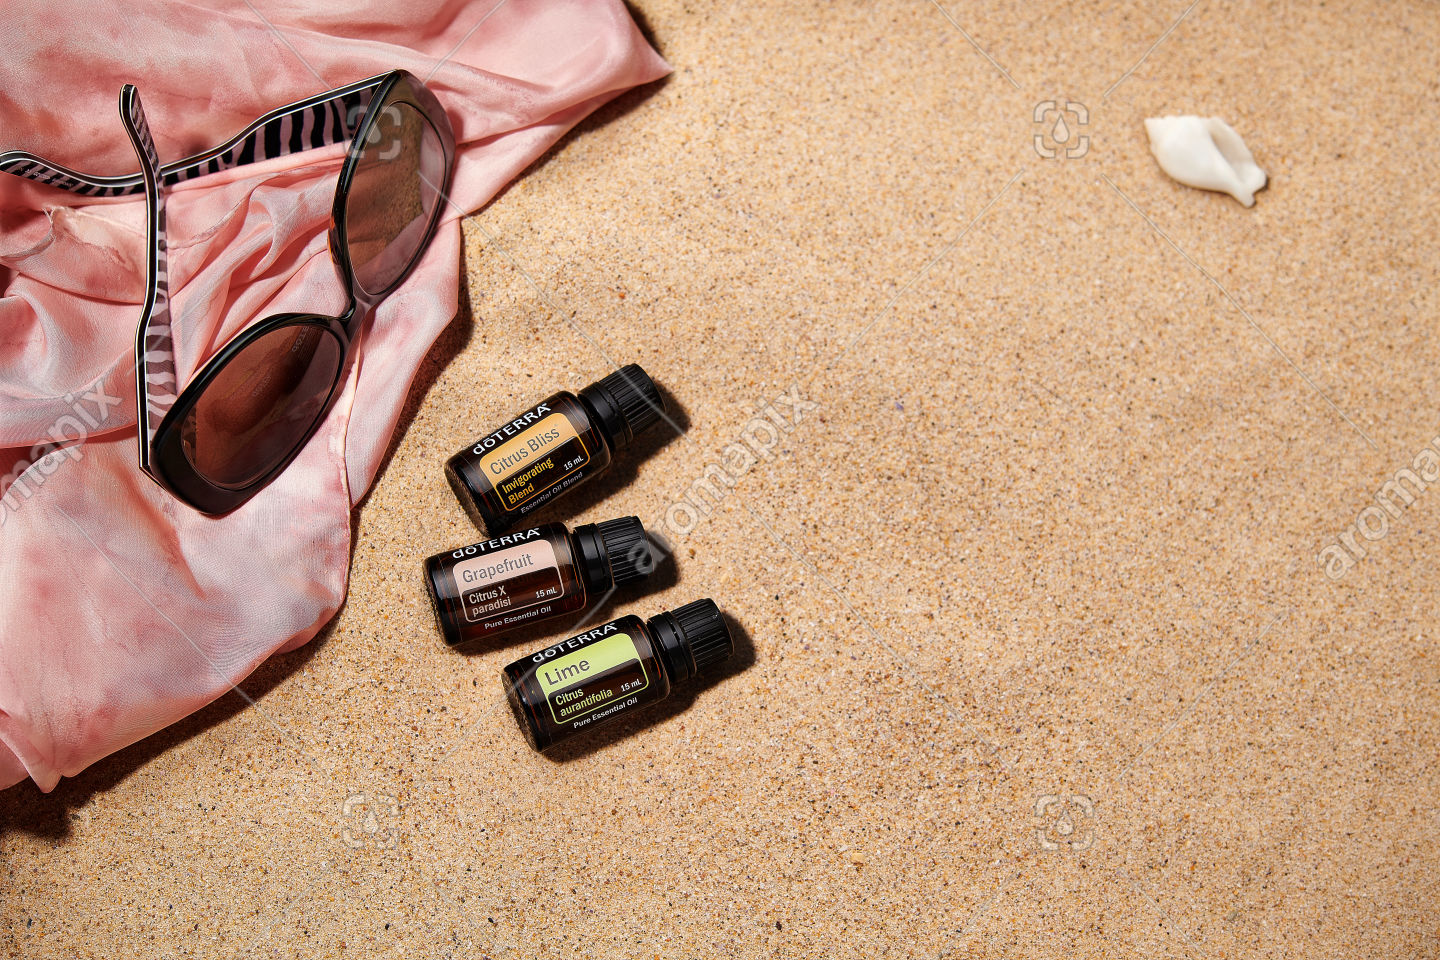 doTERRA Citrus Bliss, Grapefruit and Lime with accessories on sand